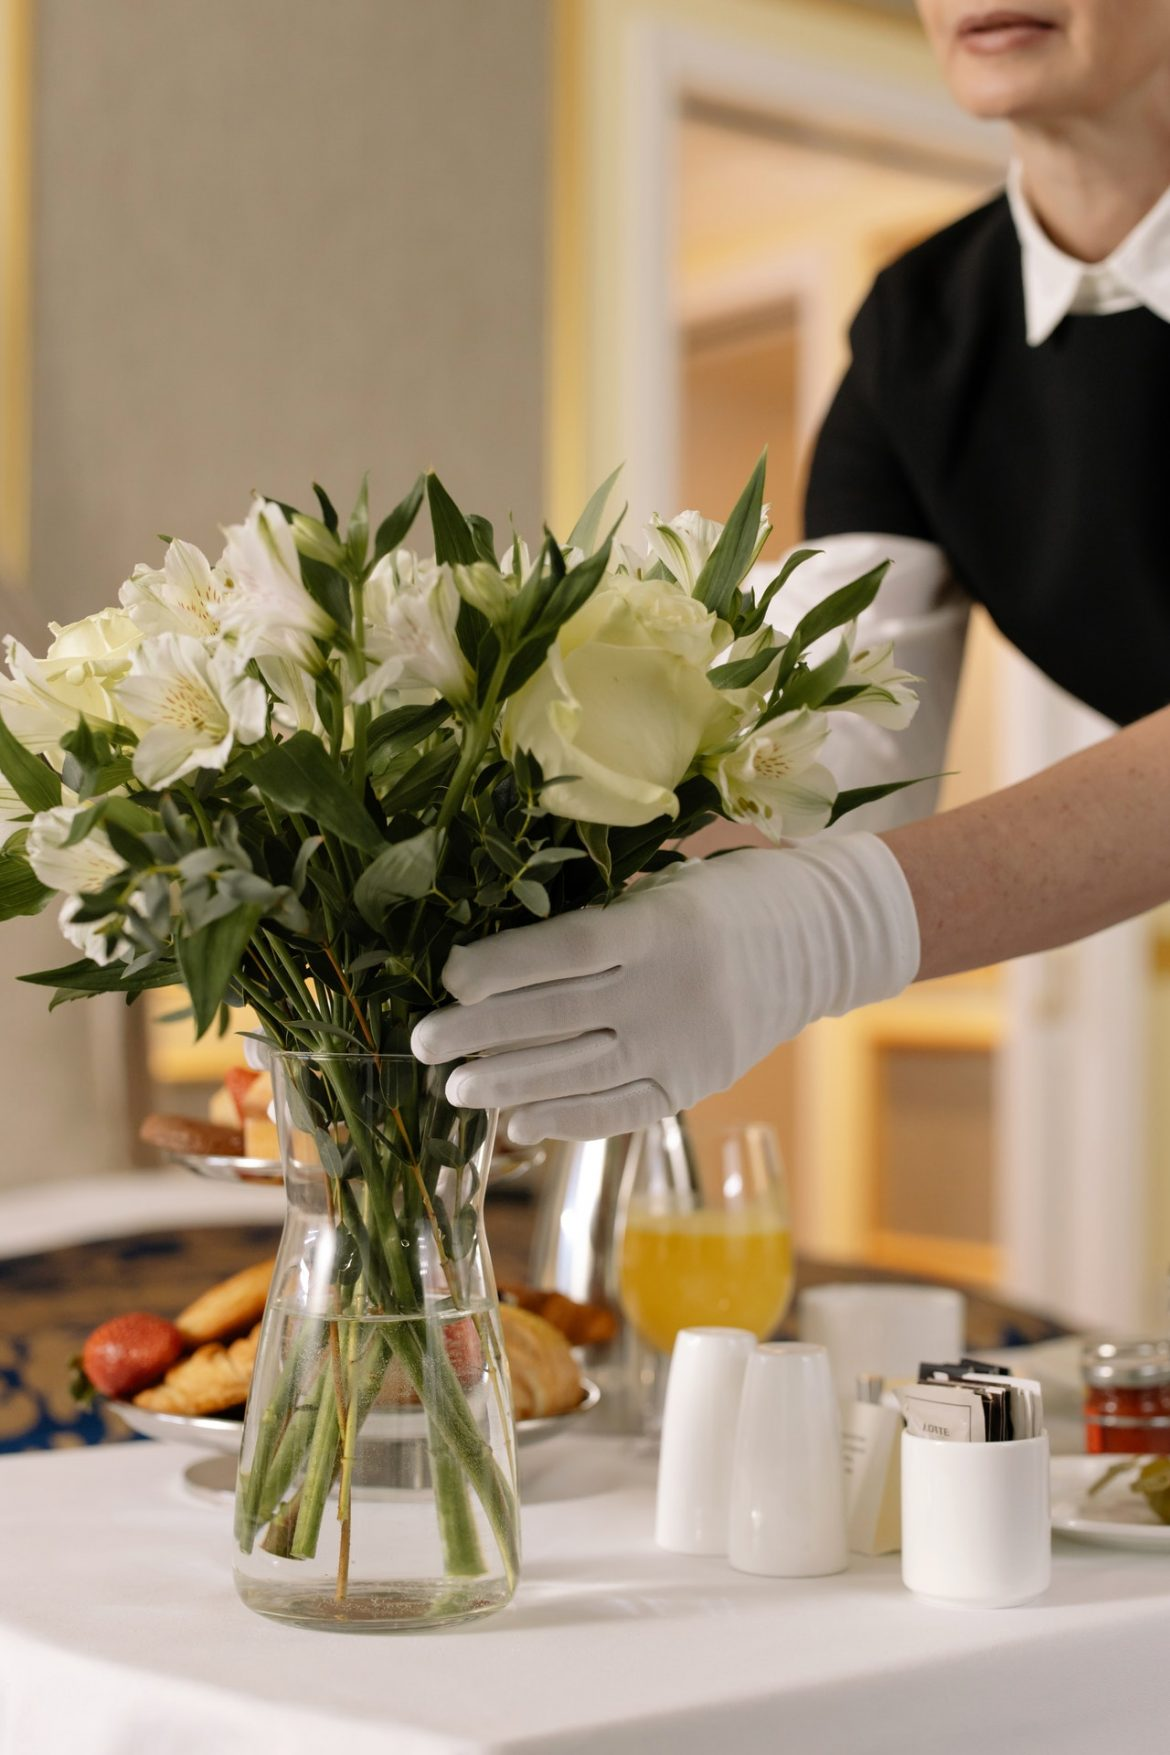 How housekeeping uniforms keep you safe at work